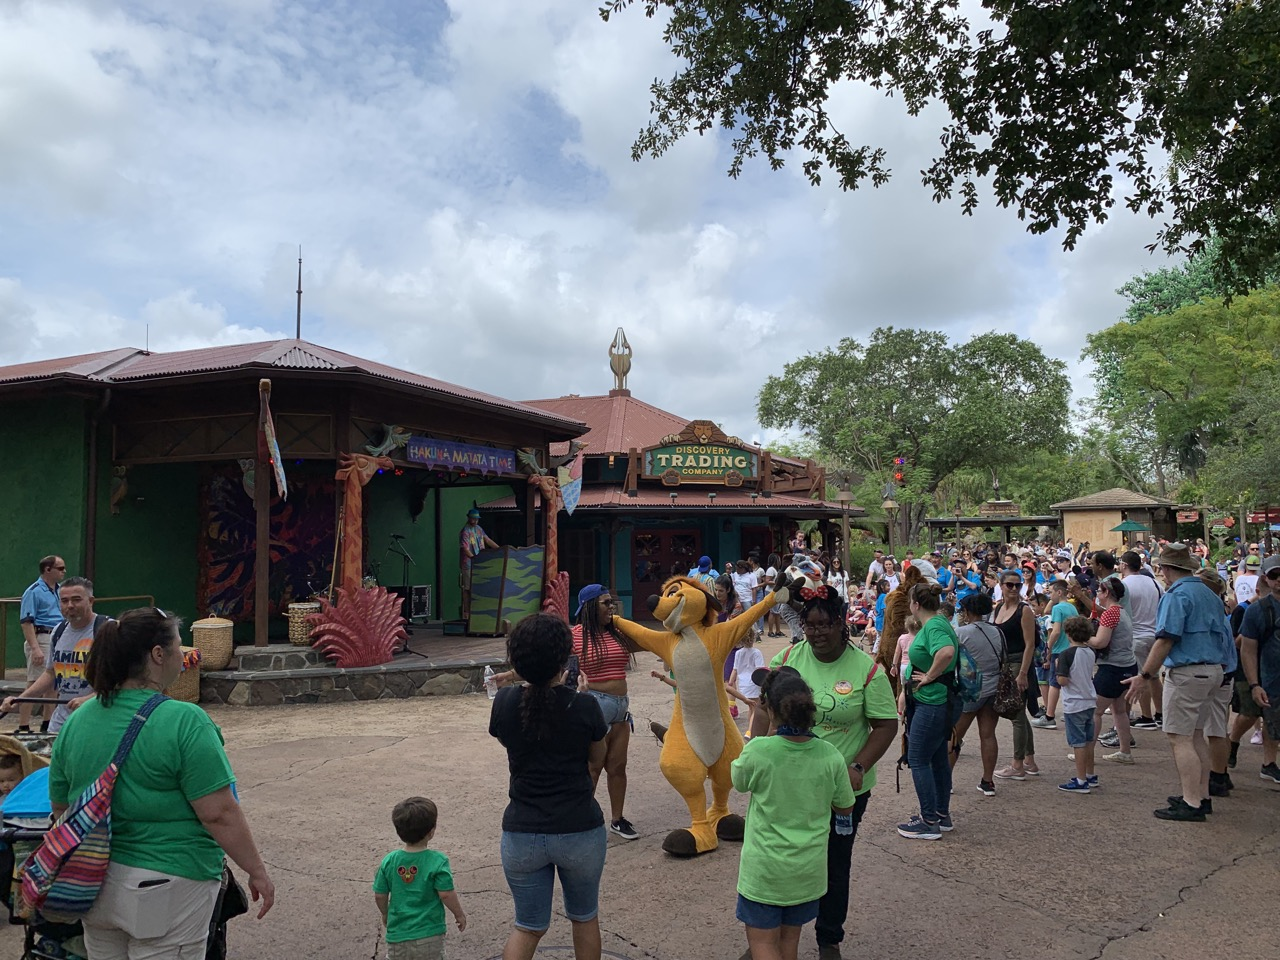 disney world trip report early summer 2019 day three 70 dance party.jpeg